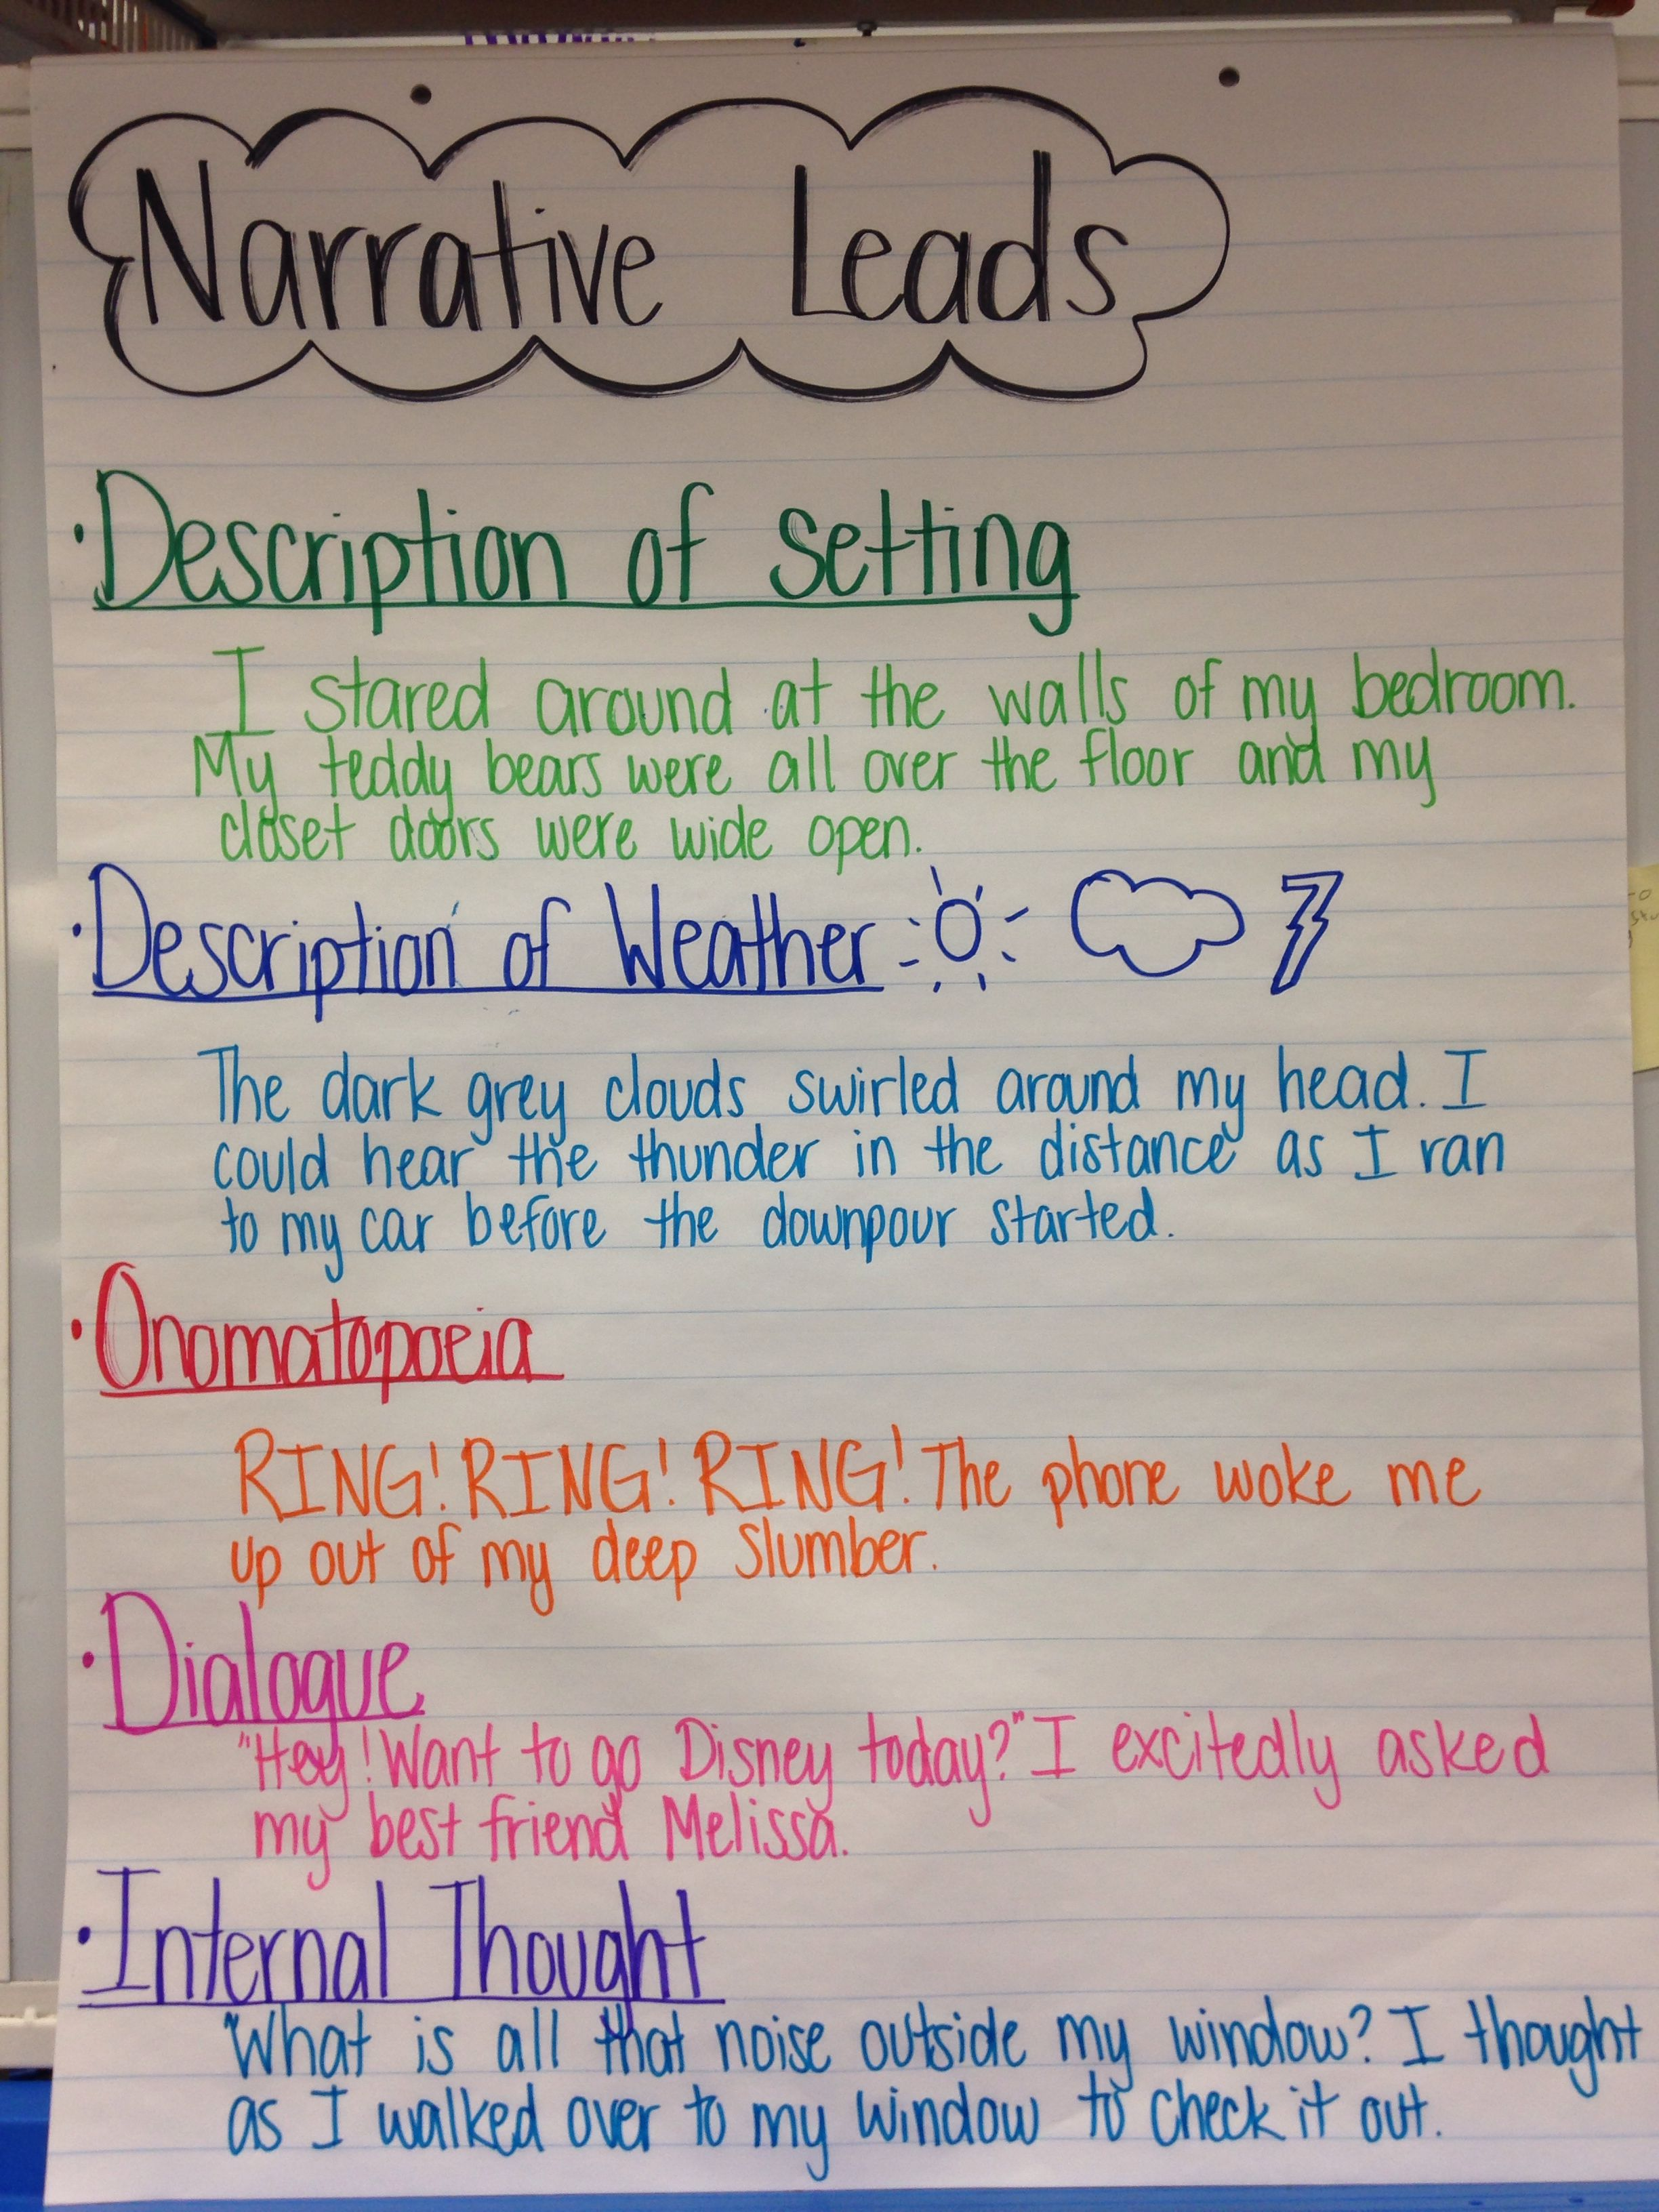 narrative leads-examples given | my anchor charts | pinterest